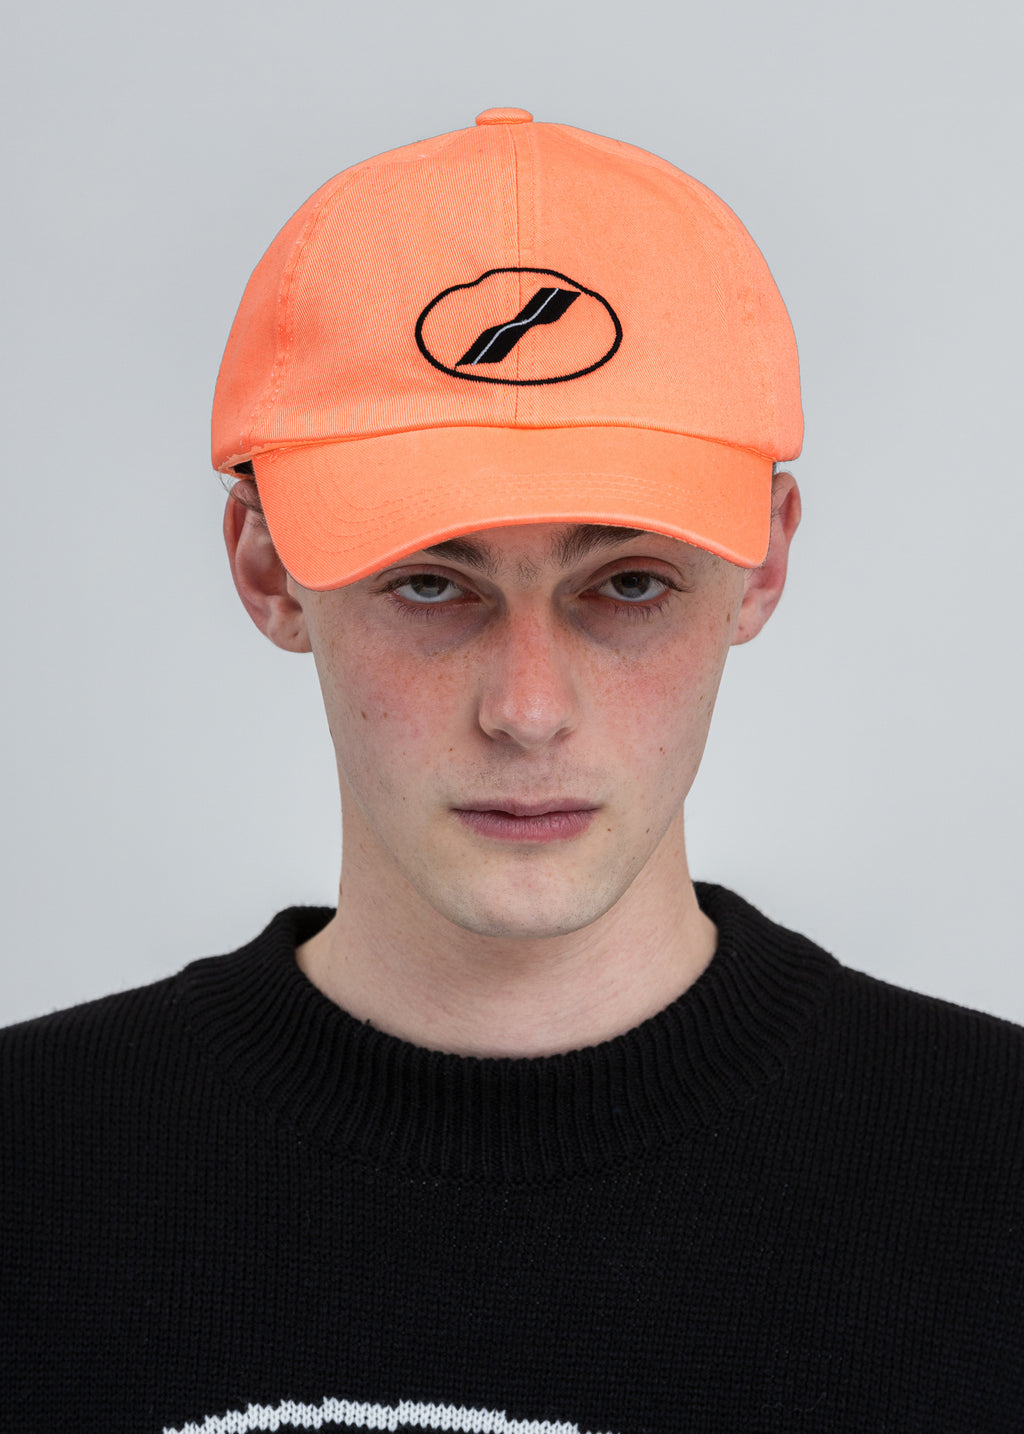 Neon Orange New We11done Cap